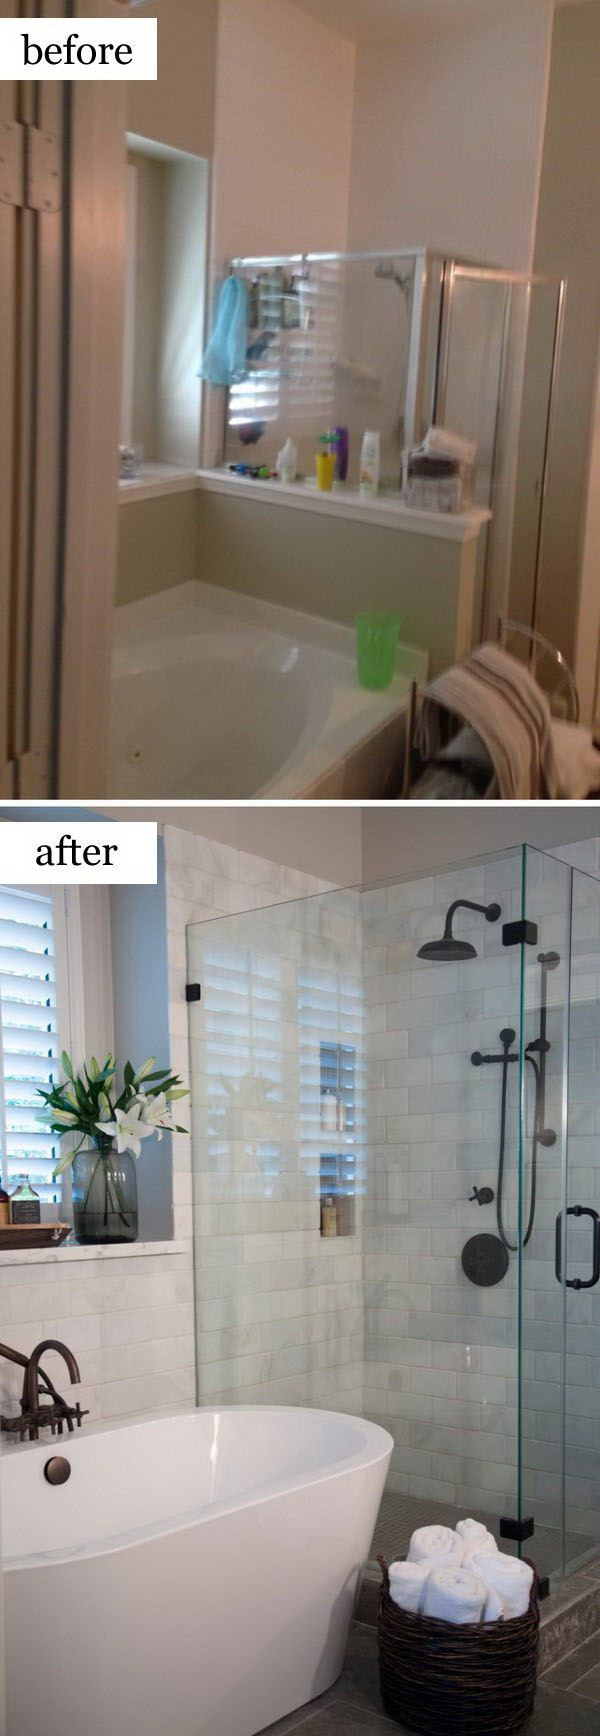 Diy Small Bathroom Remodel Ideas best 25+ small bathroom makeovers ideas only on pinterest | small